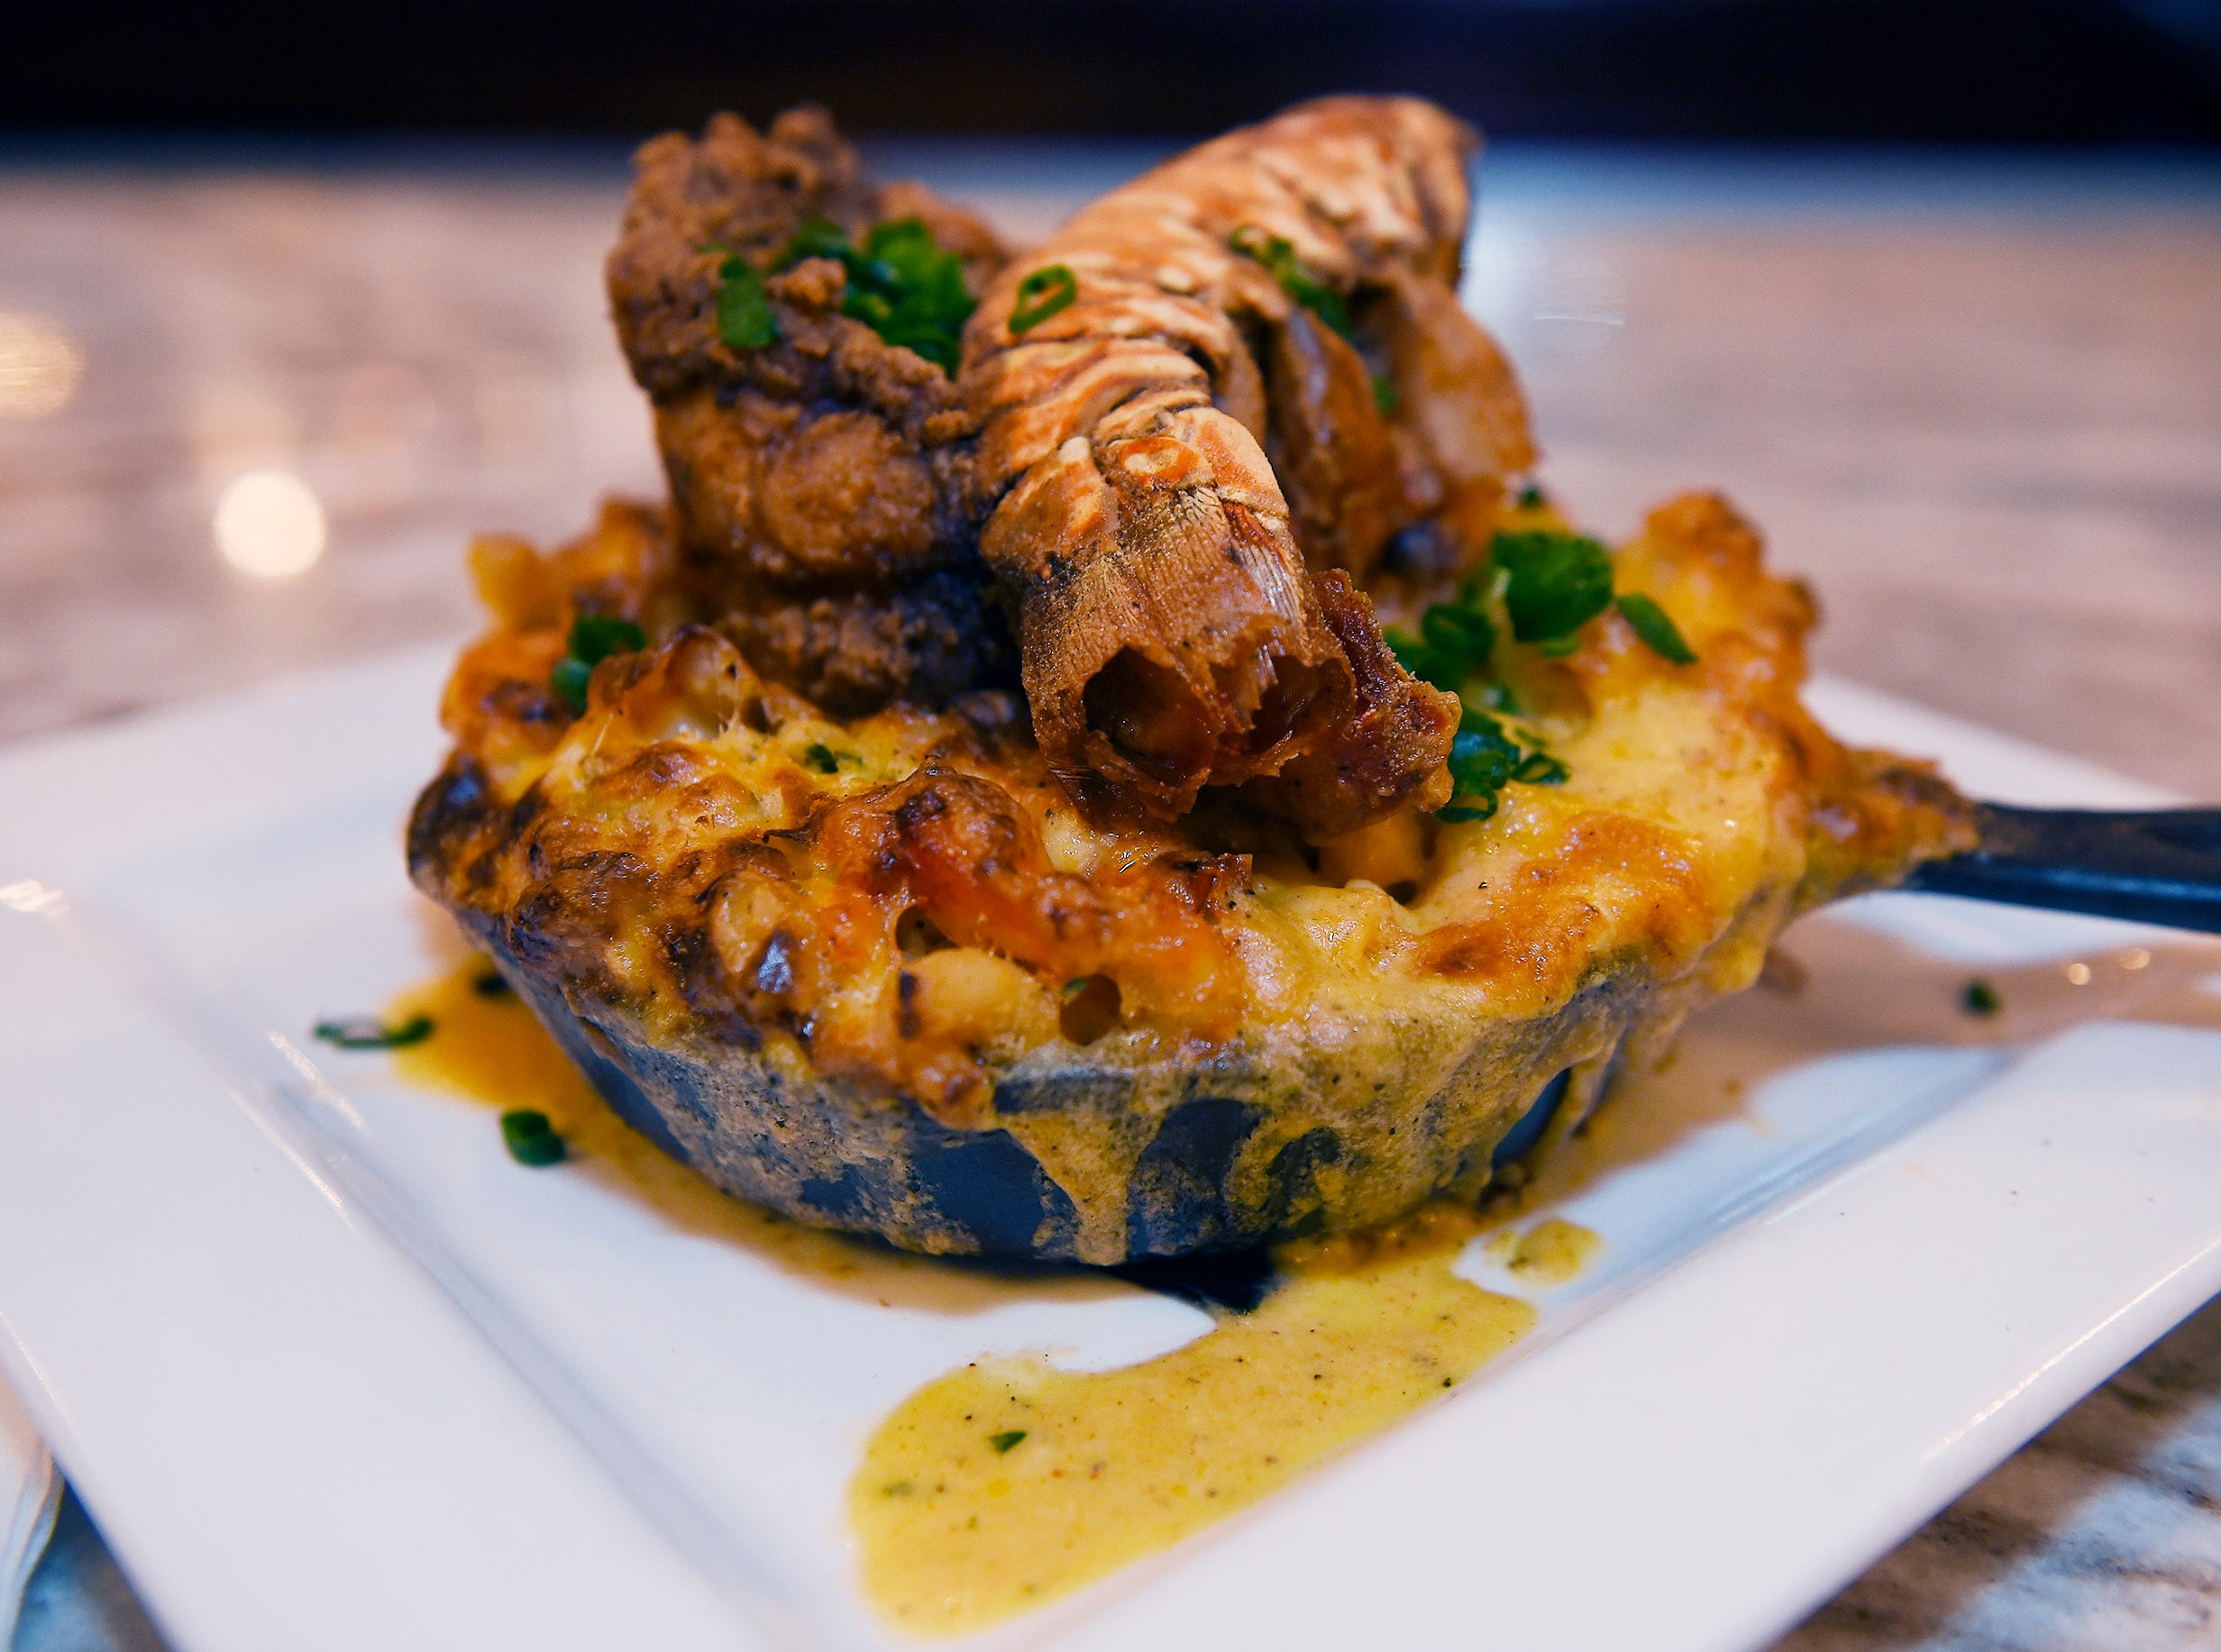 A plate of the Seafood Overload Mac & Cheese, (Cavatappi, five cheese blend, rock lobster tail and jumbo lump crab.